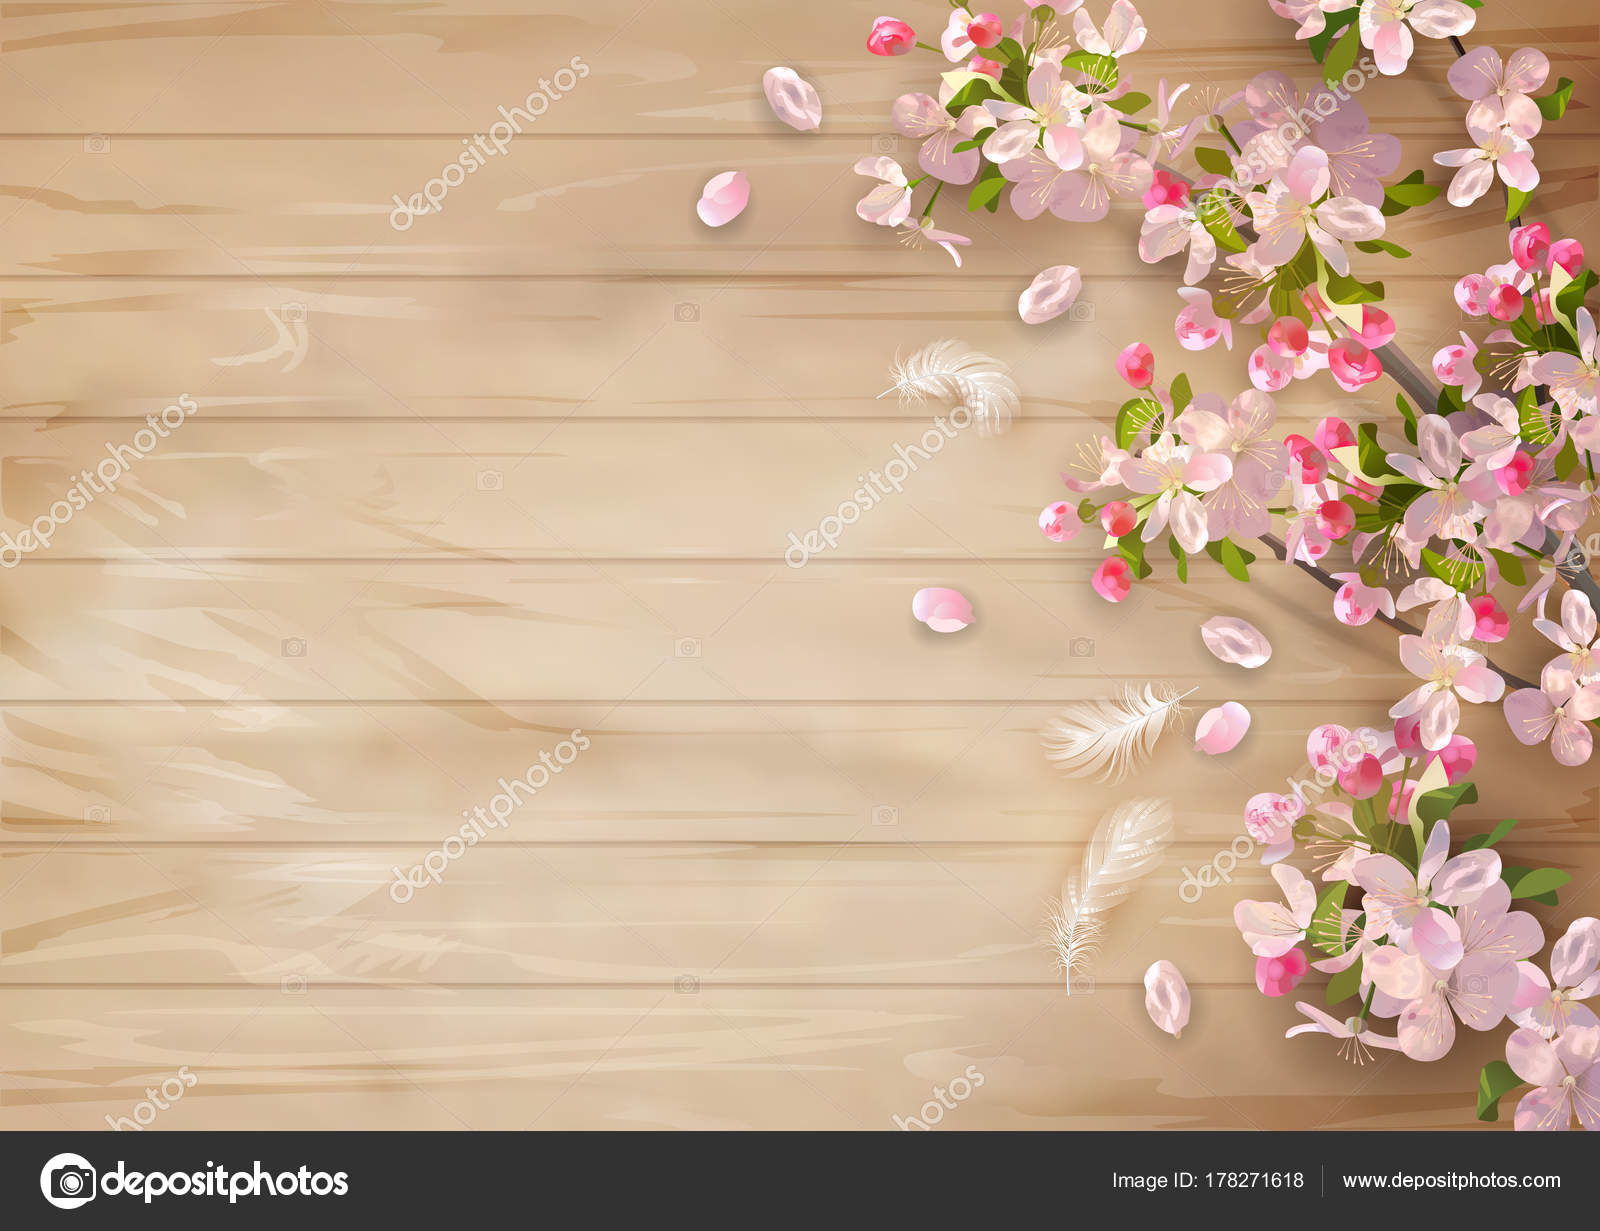 Spring Flower Background Images: Background With Spring Flowers